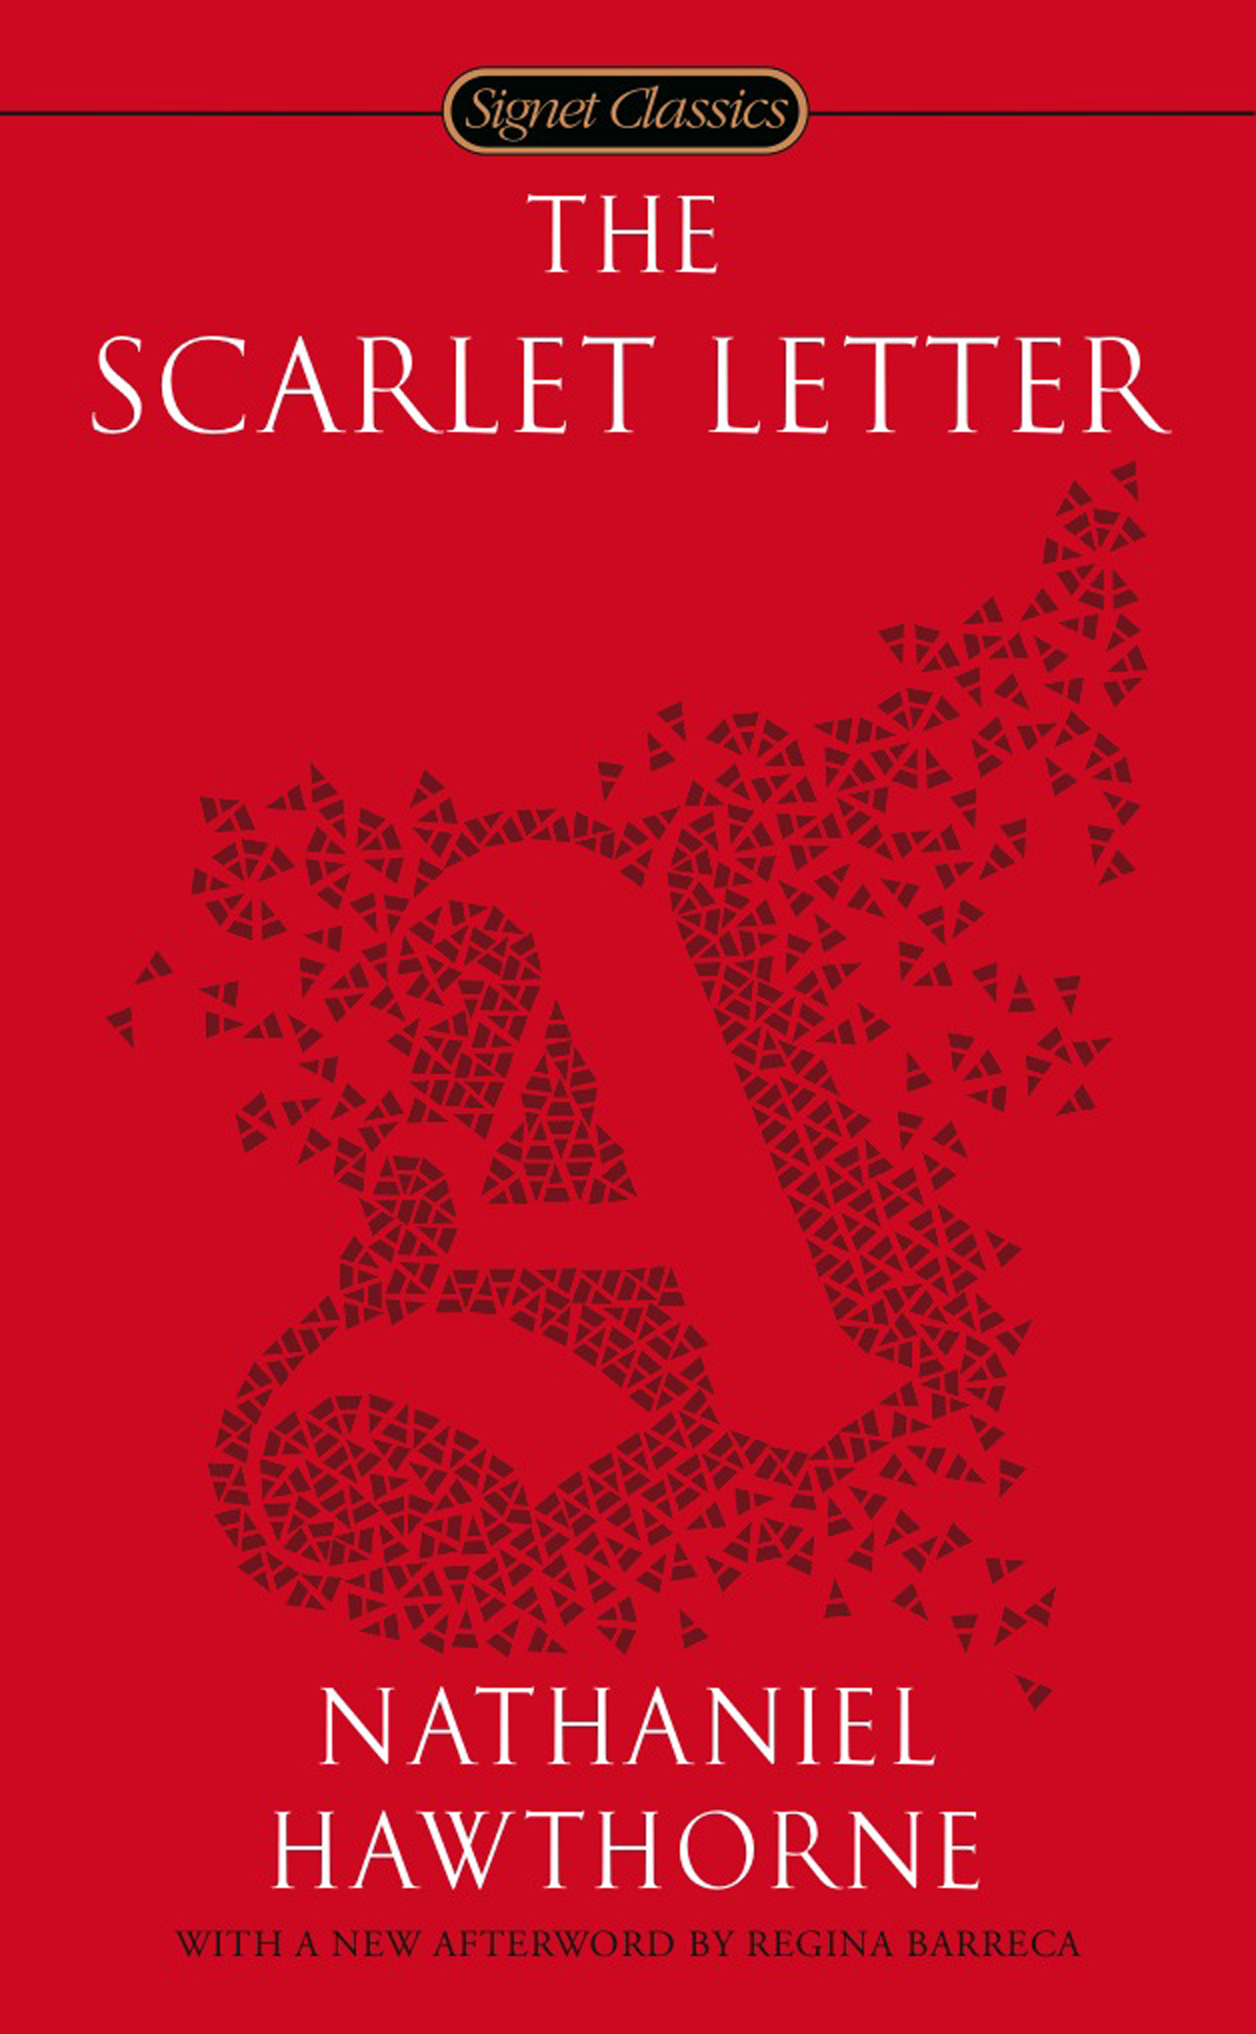 The Scarlet Letter by Nathaniel Hawthorne  Southeast by Midwest